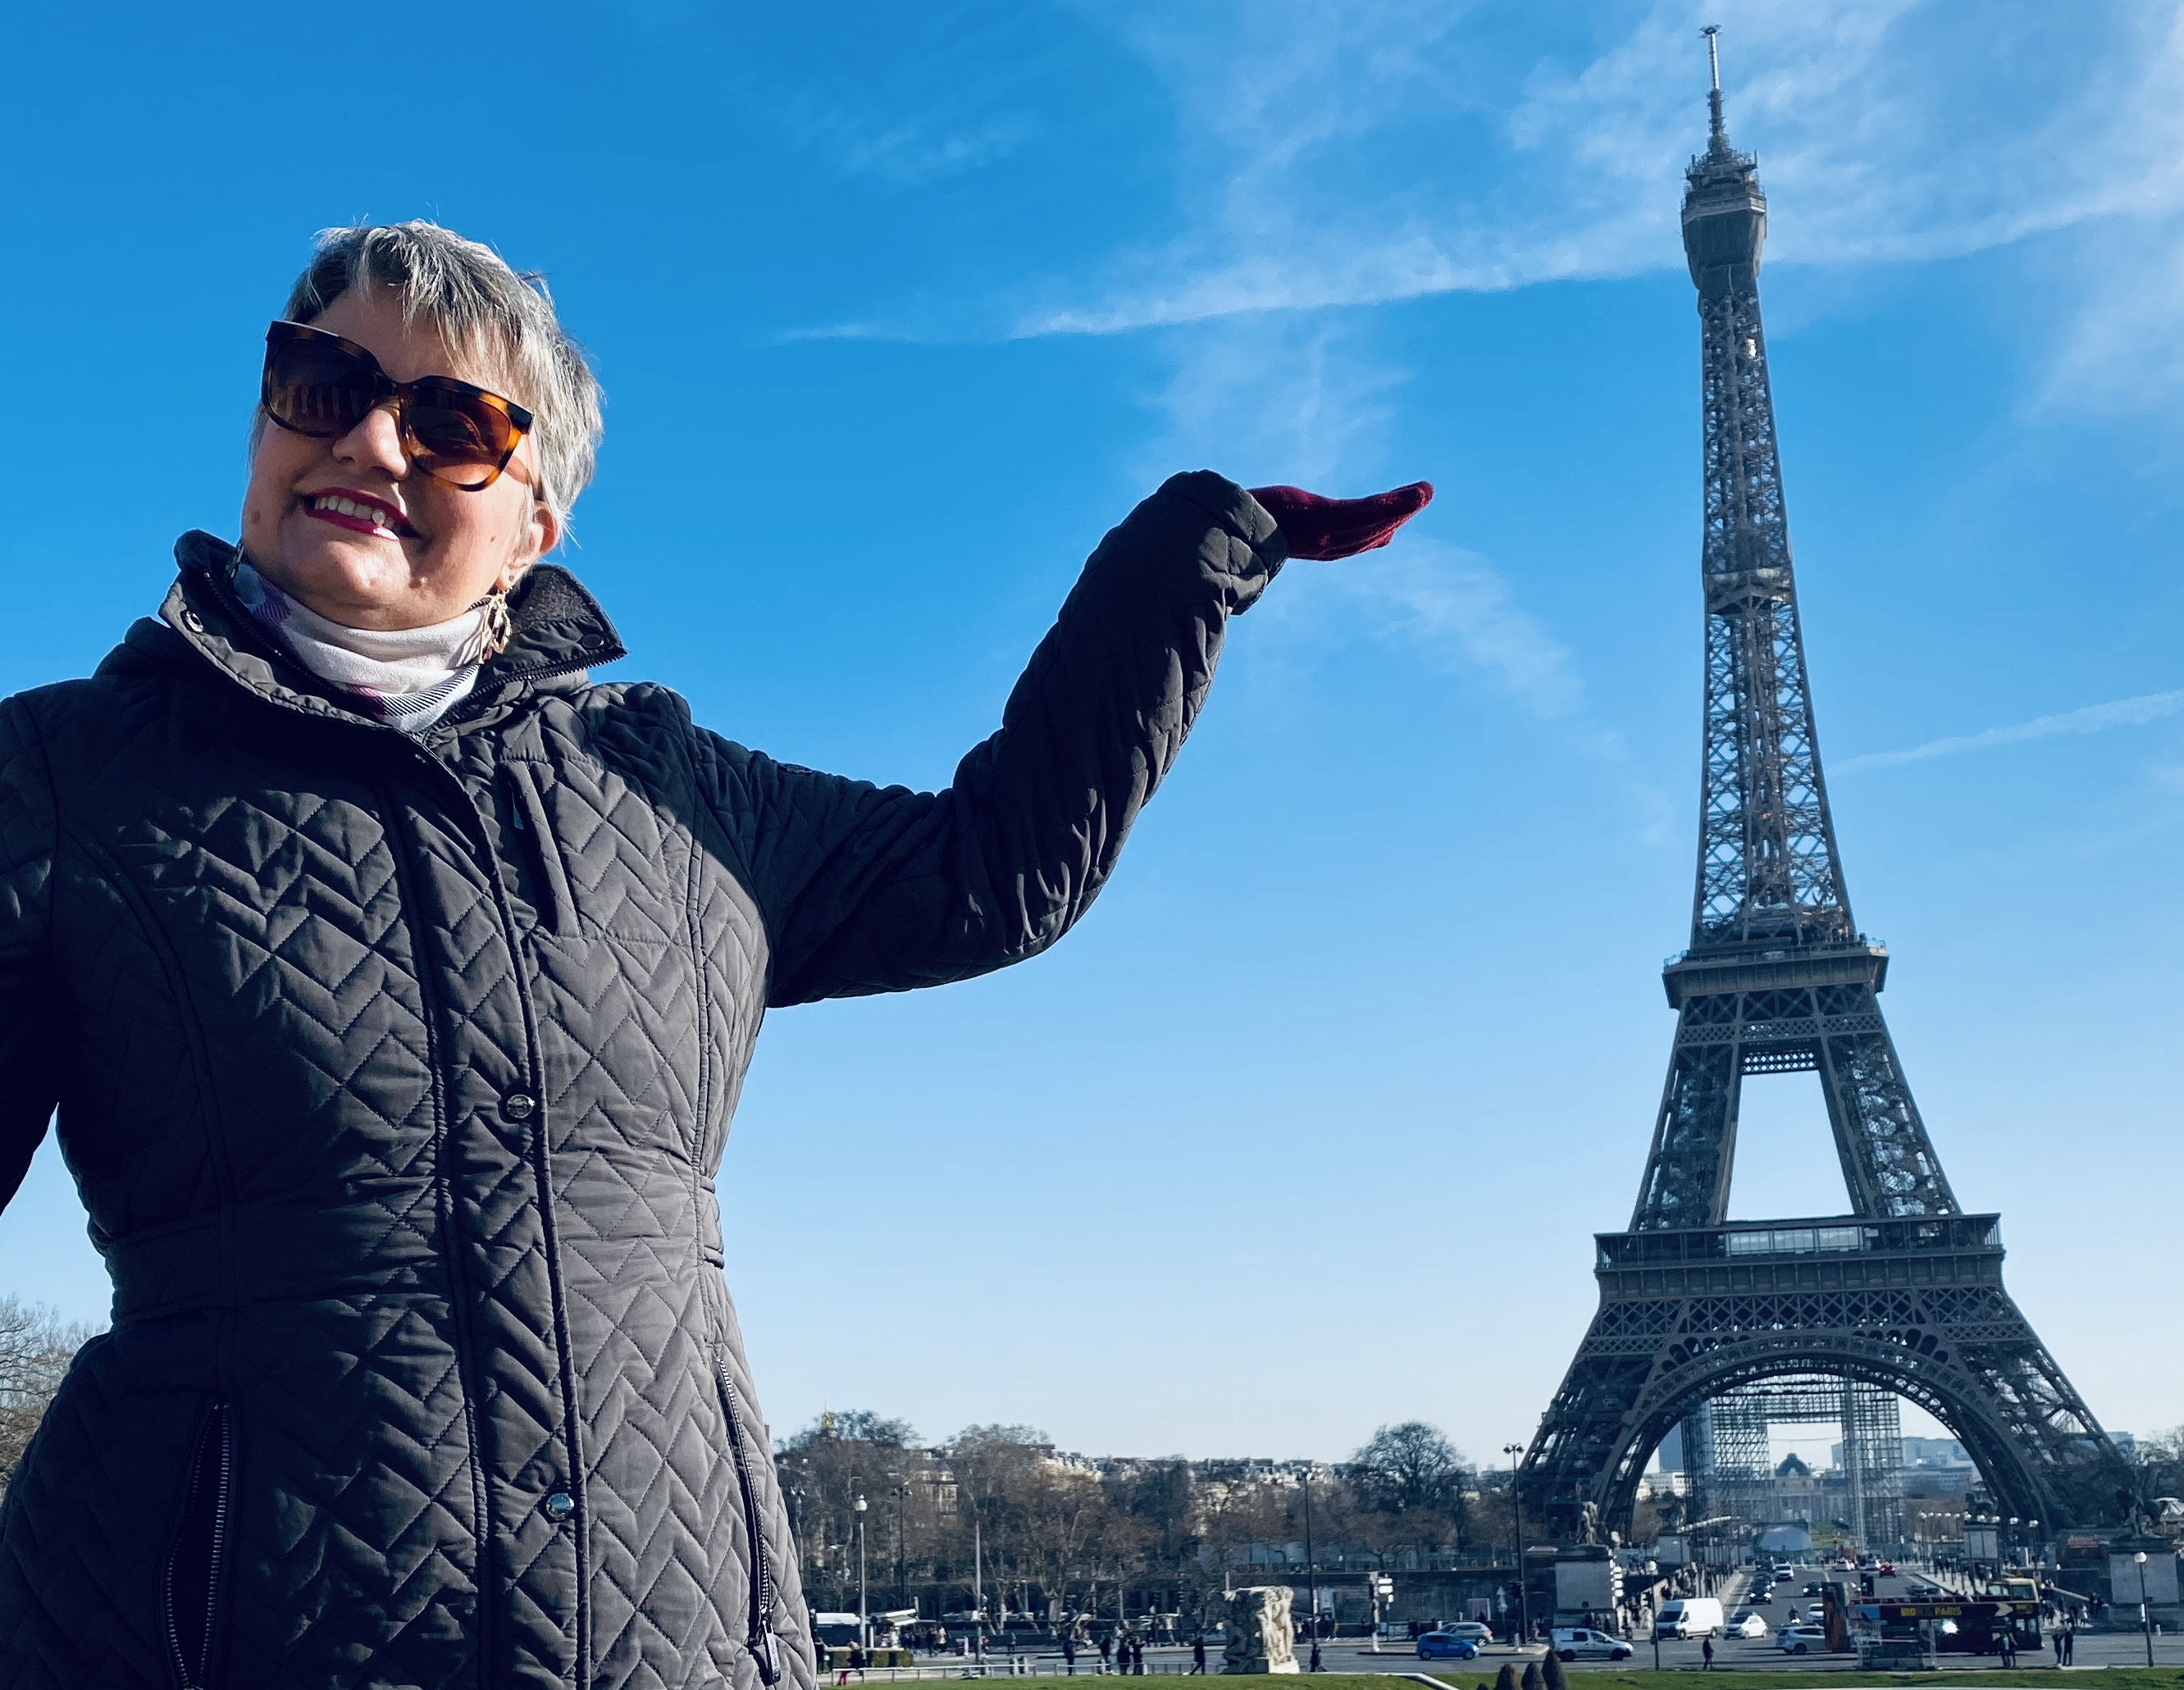 """Culture Honey founder Georgia Sanders introducing the new series """"From Pasadena to Paris"""" at Tour Eiffel in Paris!"""